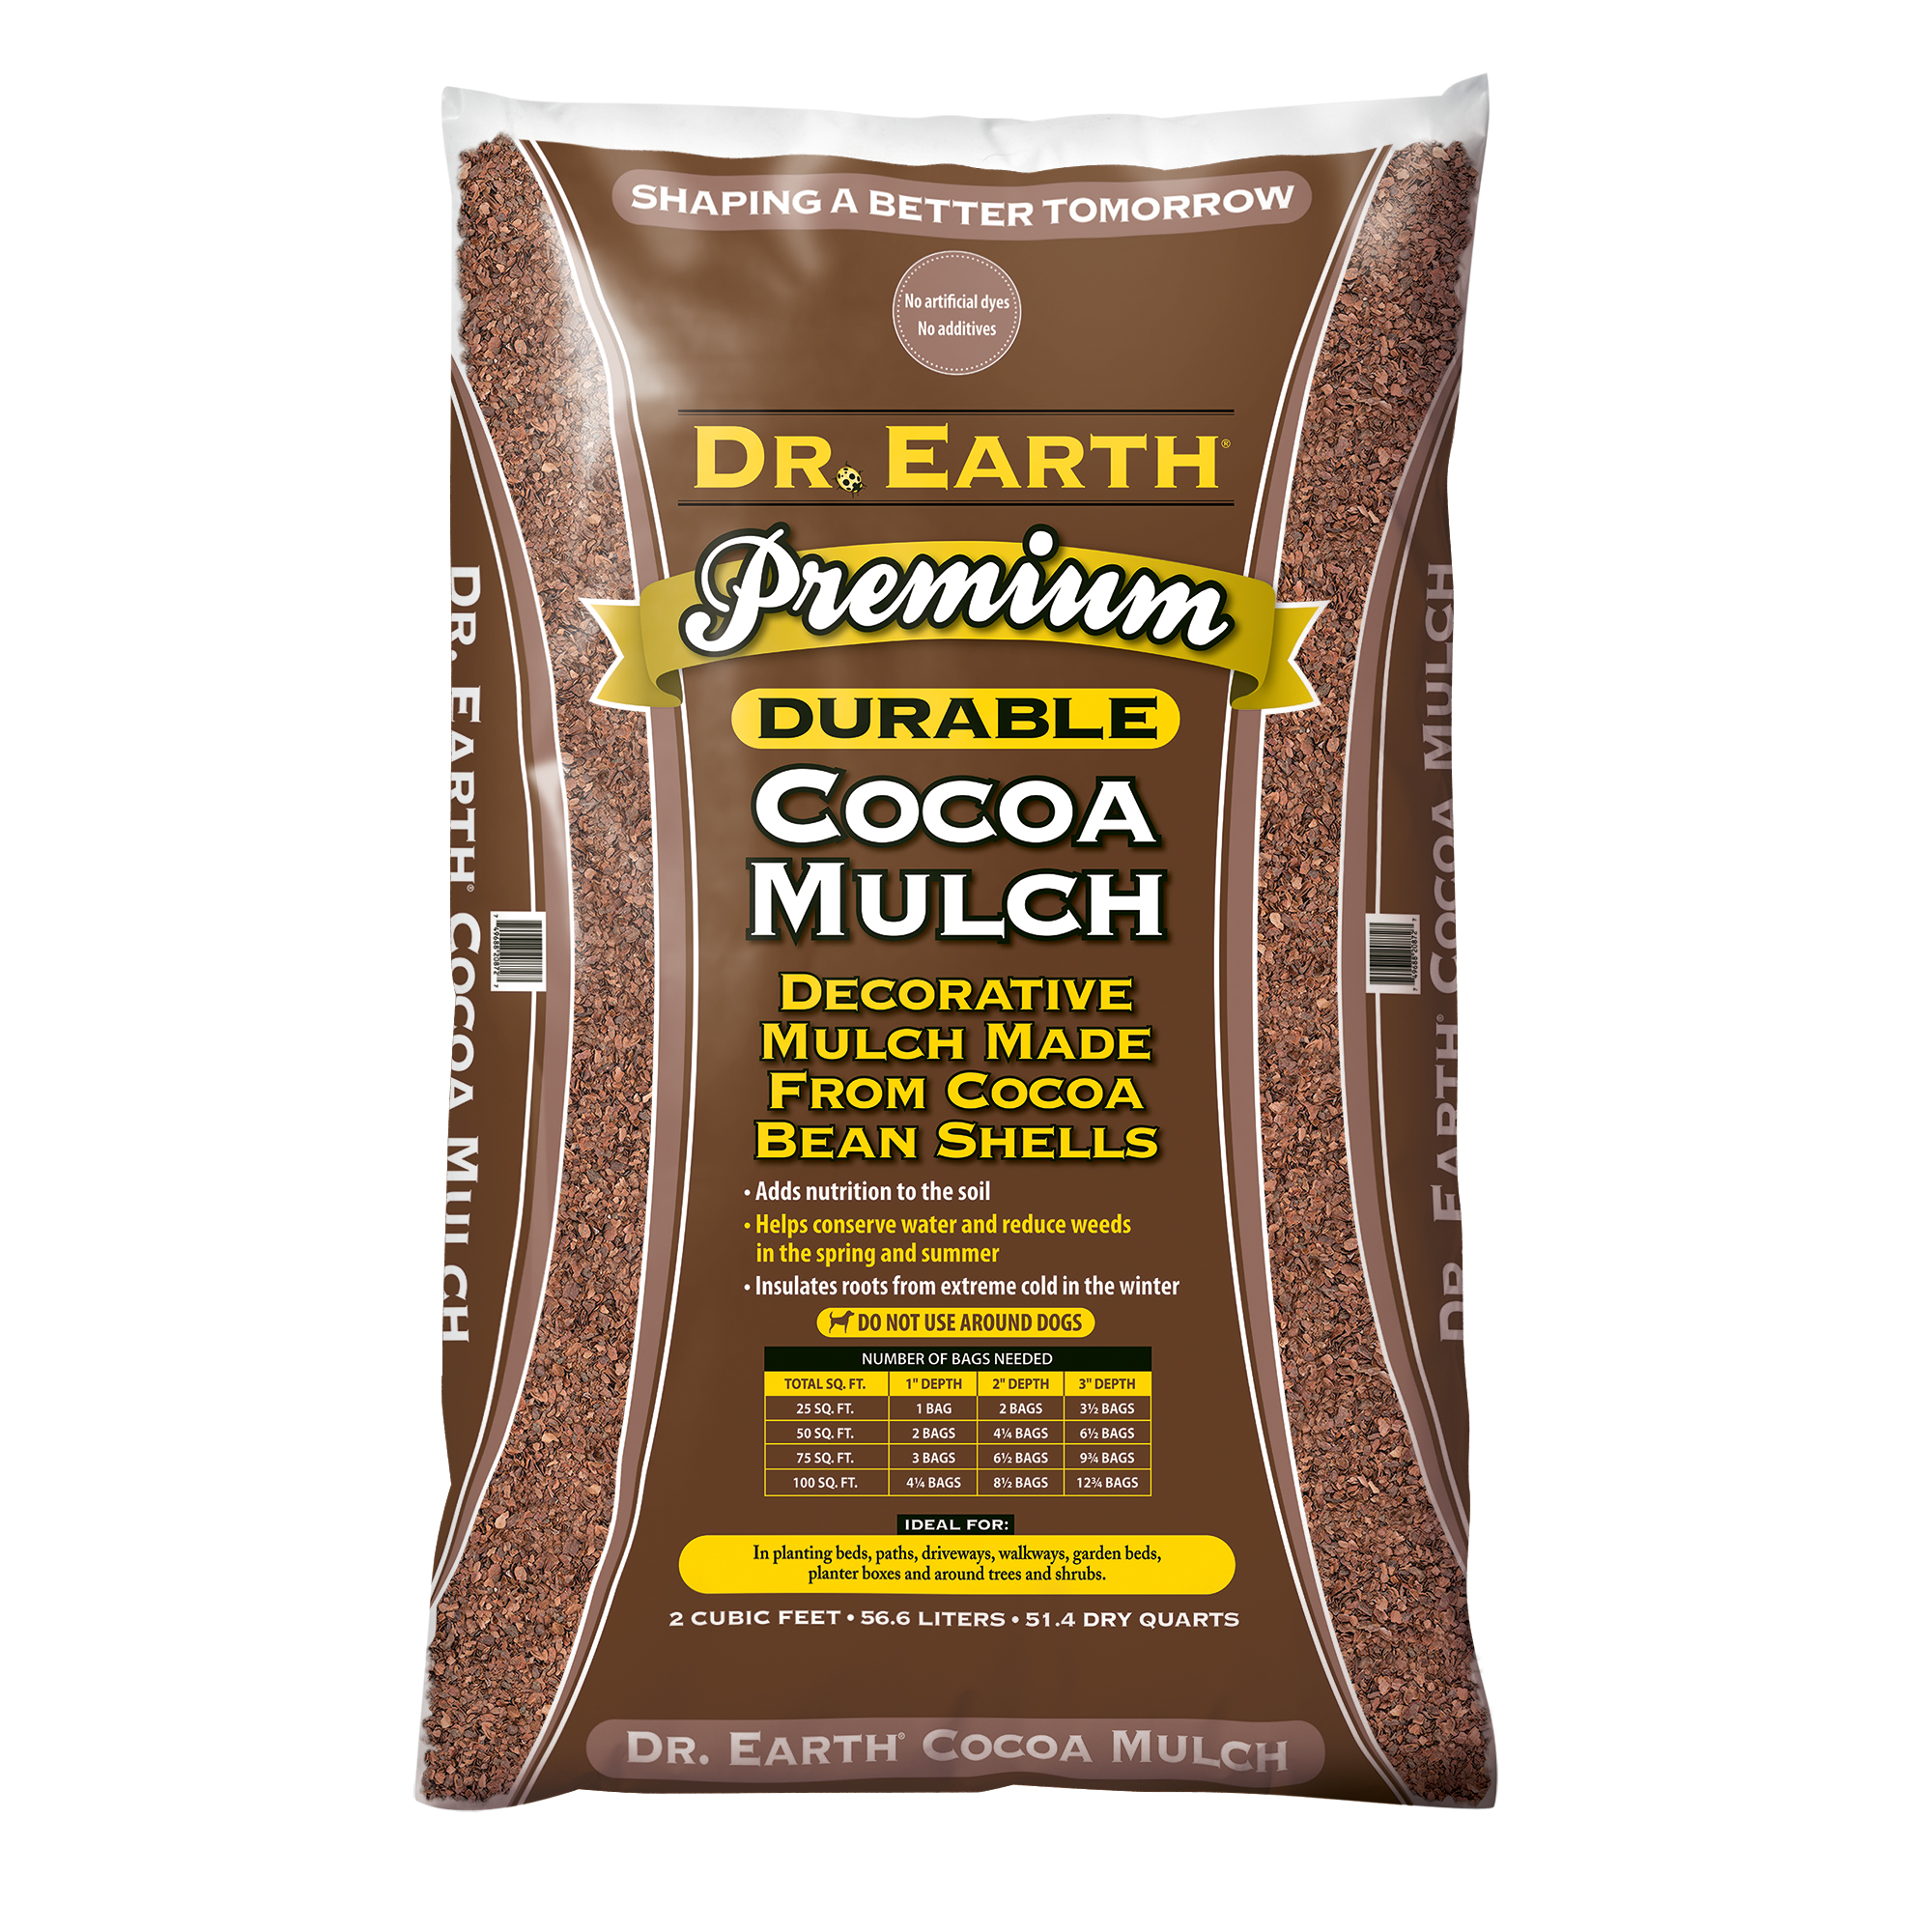 DR. EARTH PREMIUM  COCOA MULCH  DECORATIVE MULCH MADE FROM COCOA BEAN SHELLS